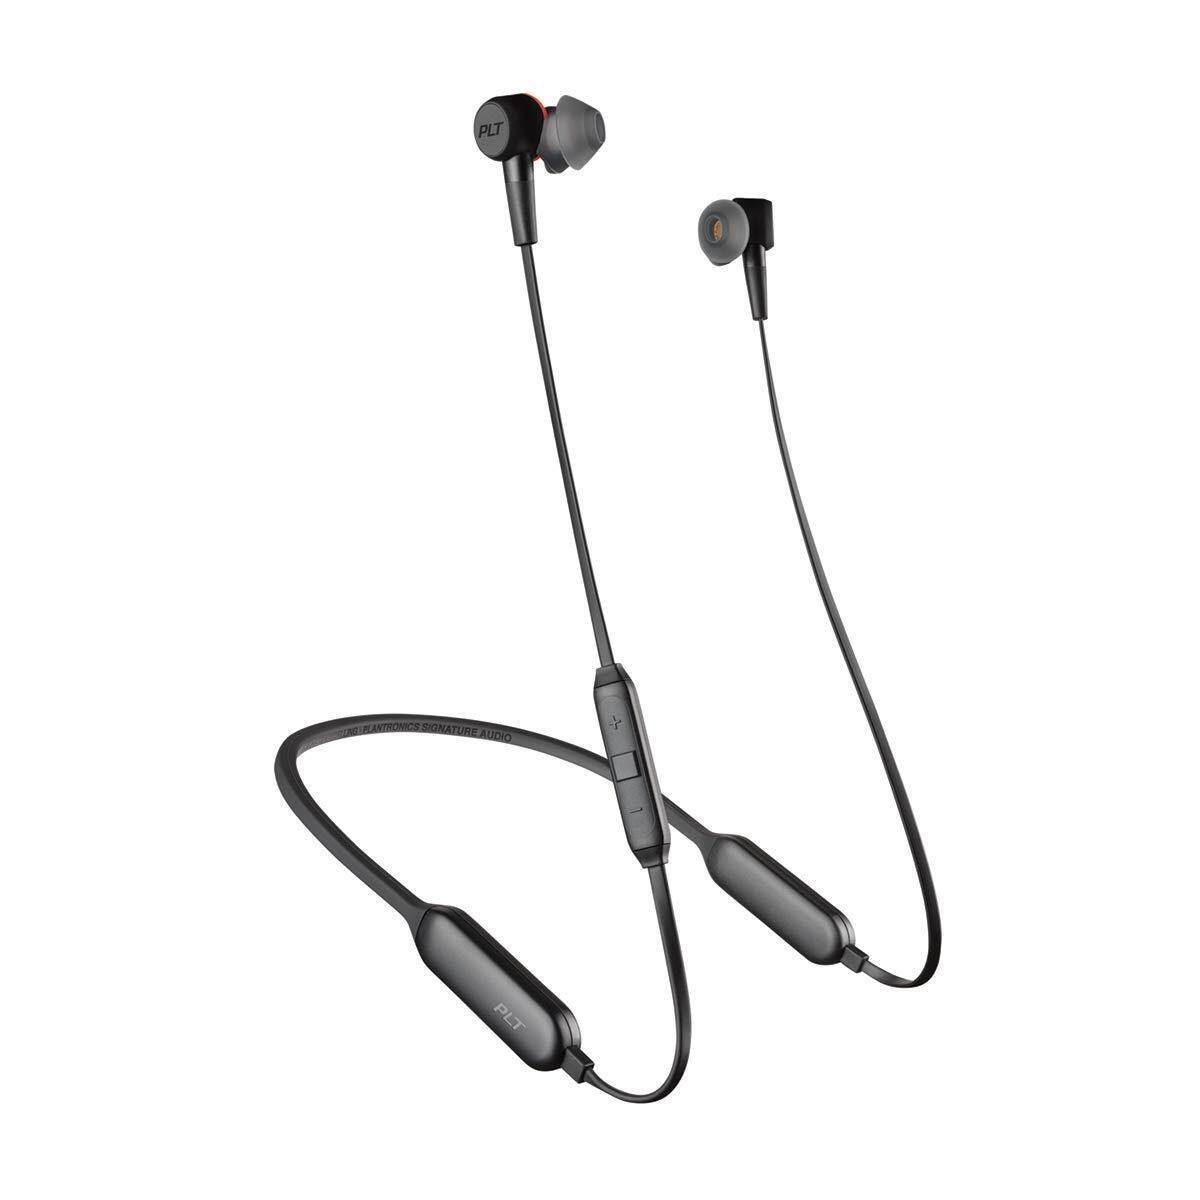 Plantronics BackBeat GO 410 Wireless Headphones Active Noise Canceling Earbuds - Graphite/ Bone